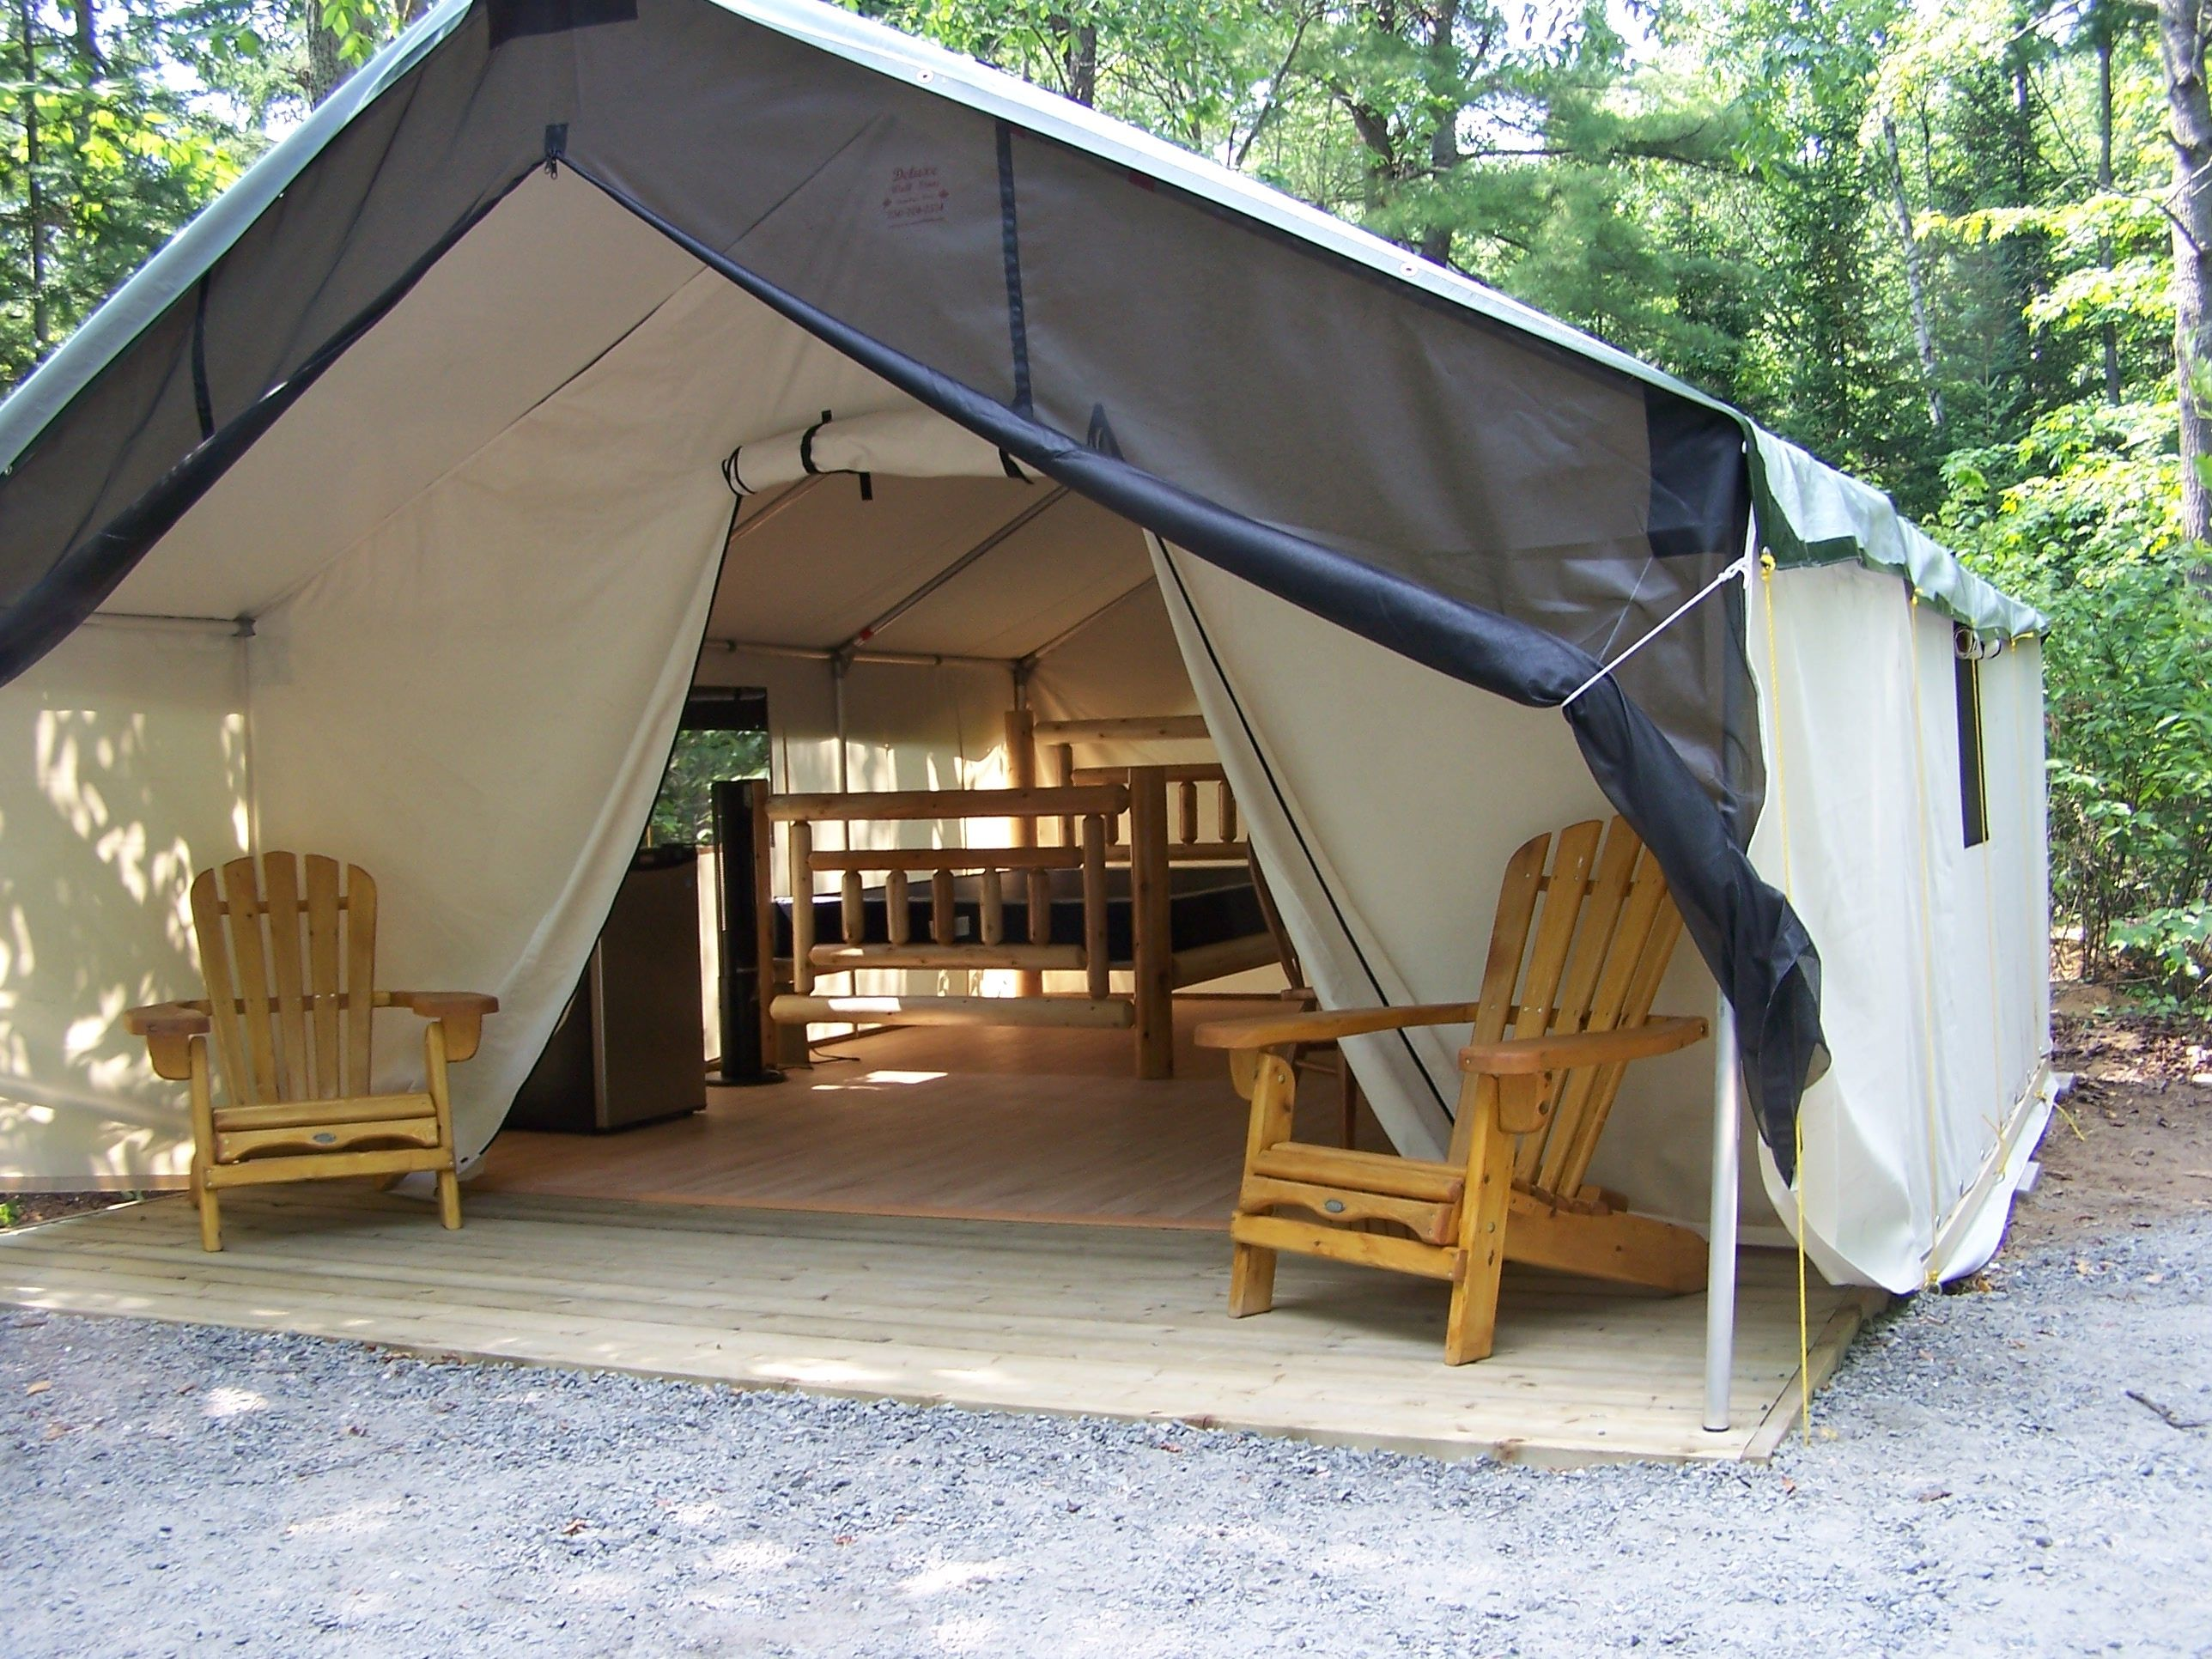 Camping Tent With Screen Porch With Screen Porch Camp In